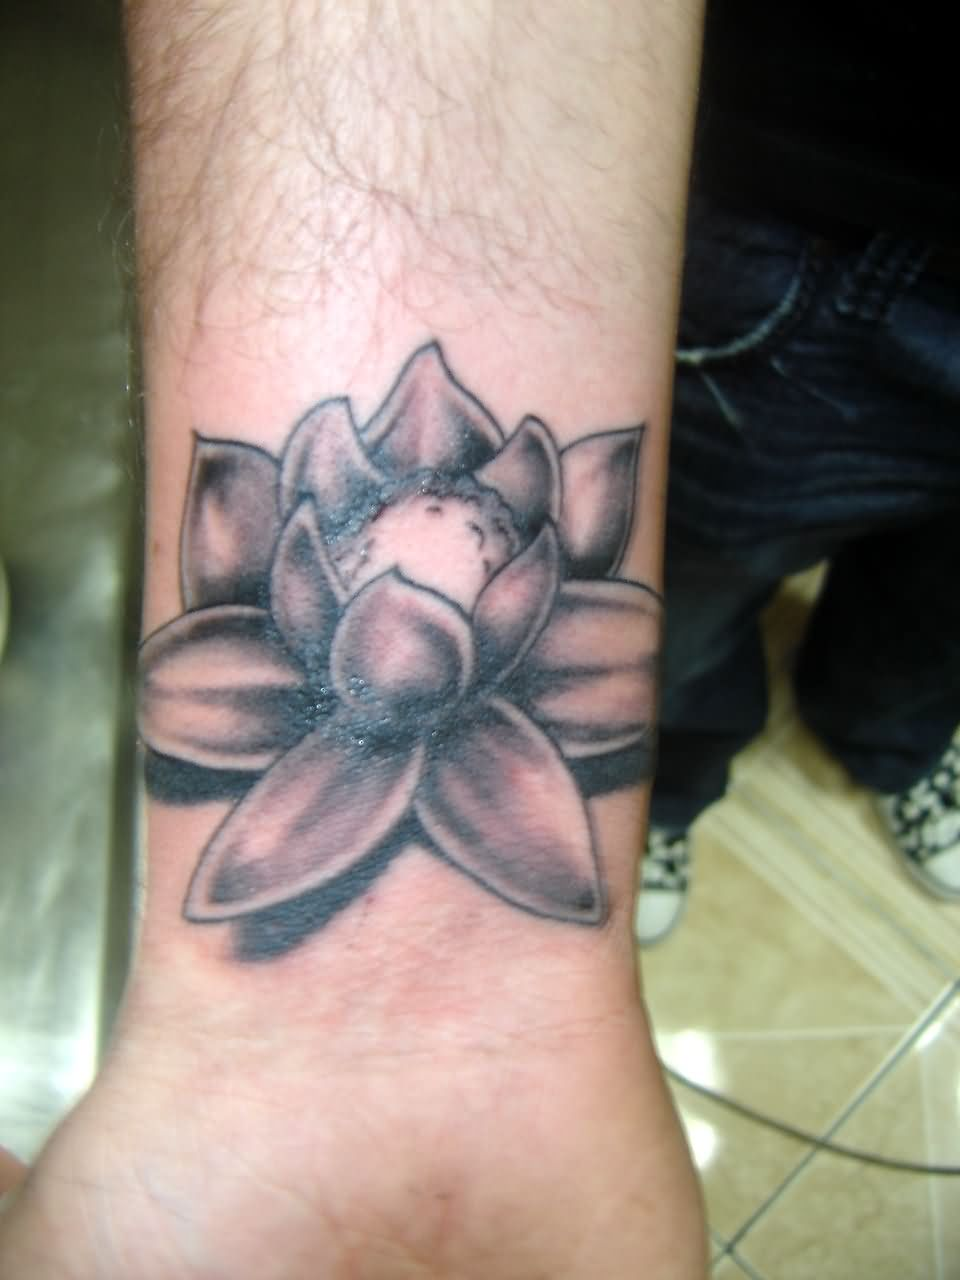 Black and grey lotus flower tattoo on wrist photos and ideas black and grey lotus flower tattoo on wrist izmirmasajfo